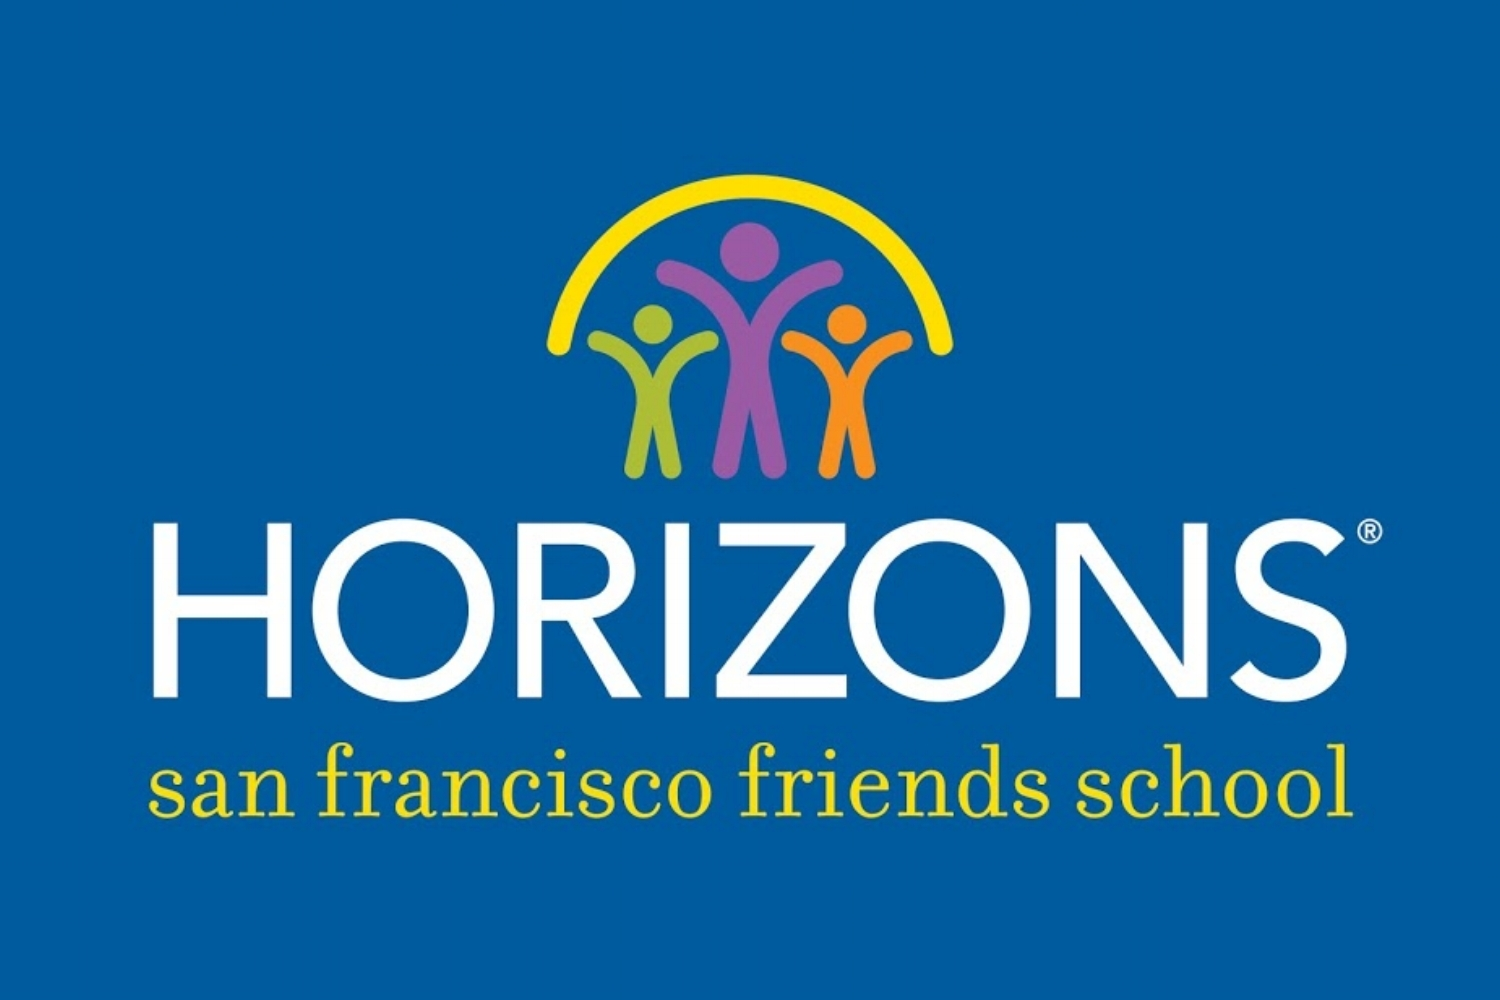 Horizons at San Francisco Friends School